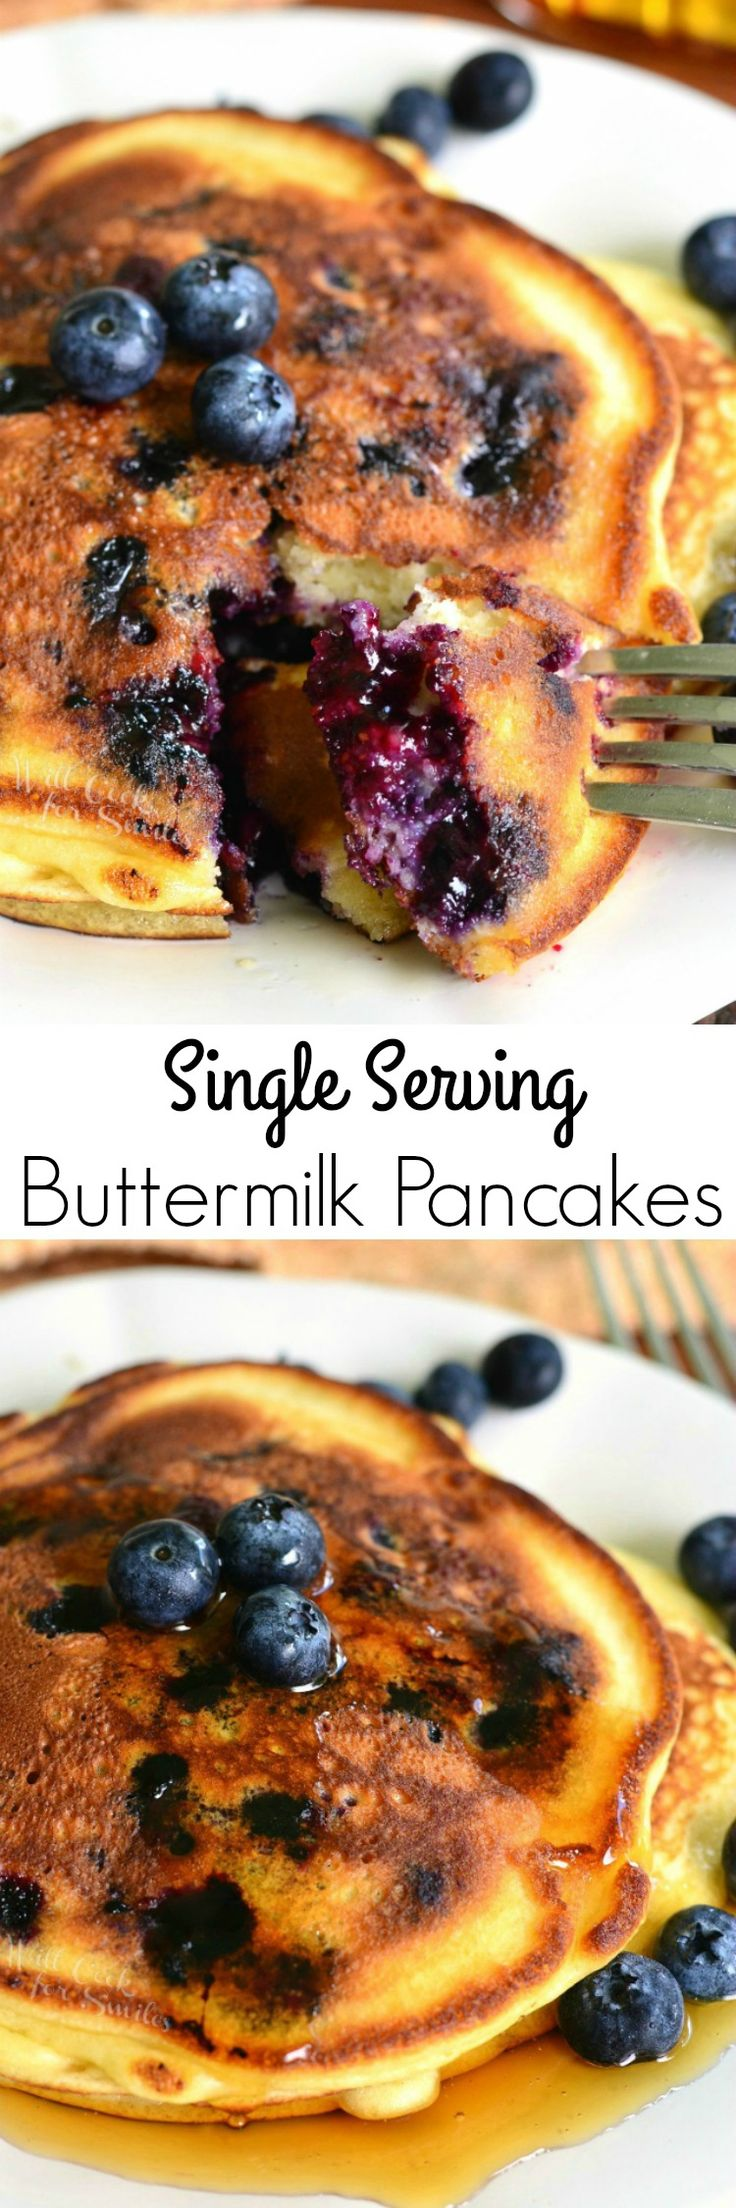 Single Serving Buttermilk Pancakes. Soft and fluffy buttermilk pancakes made just for you and you alone! Perfect quick and comforting breakfast for yourself or the kids.